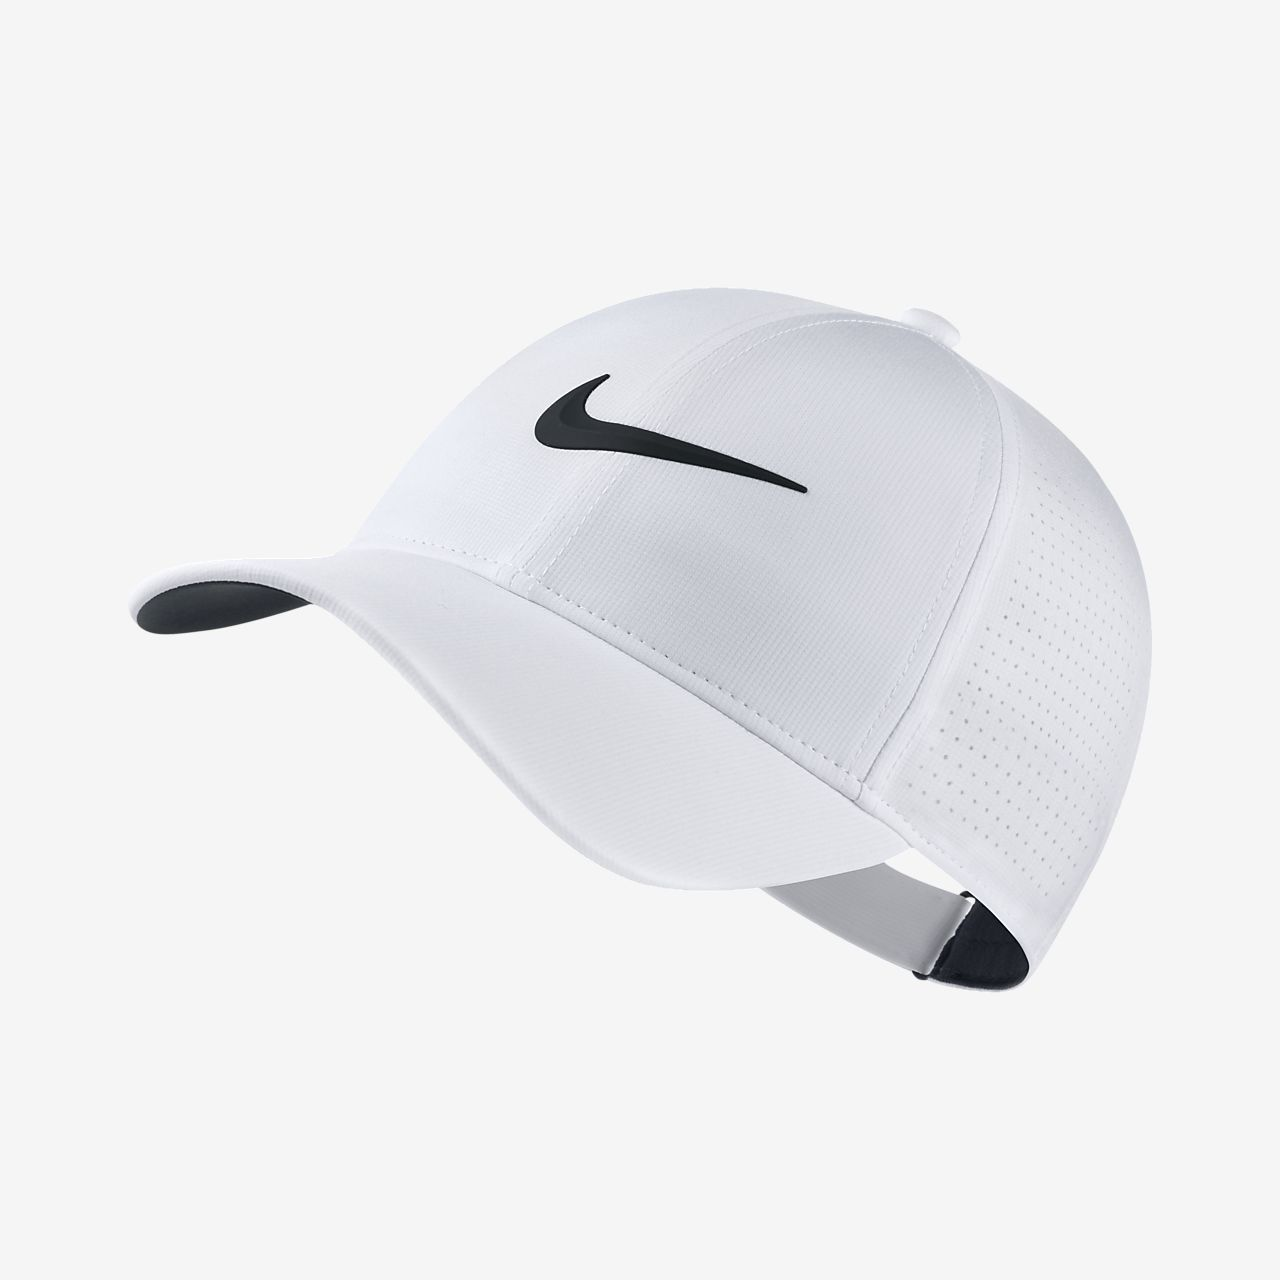 8b0b771beff Nike AeroBill Legacy 91 Adjustable Golf Hat. Nike.com RO